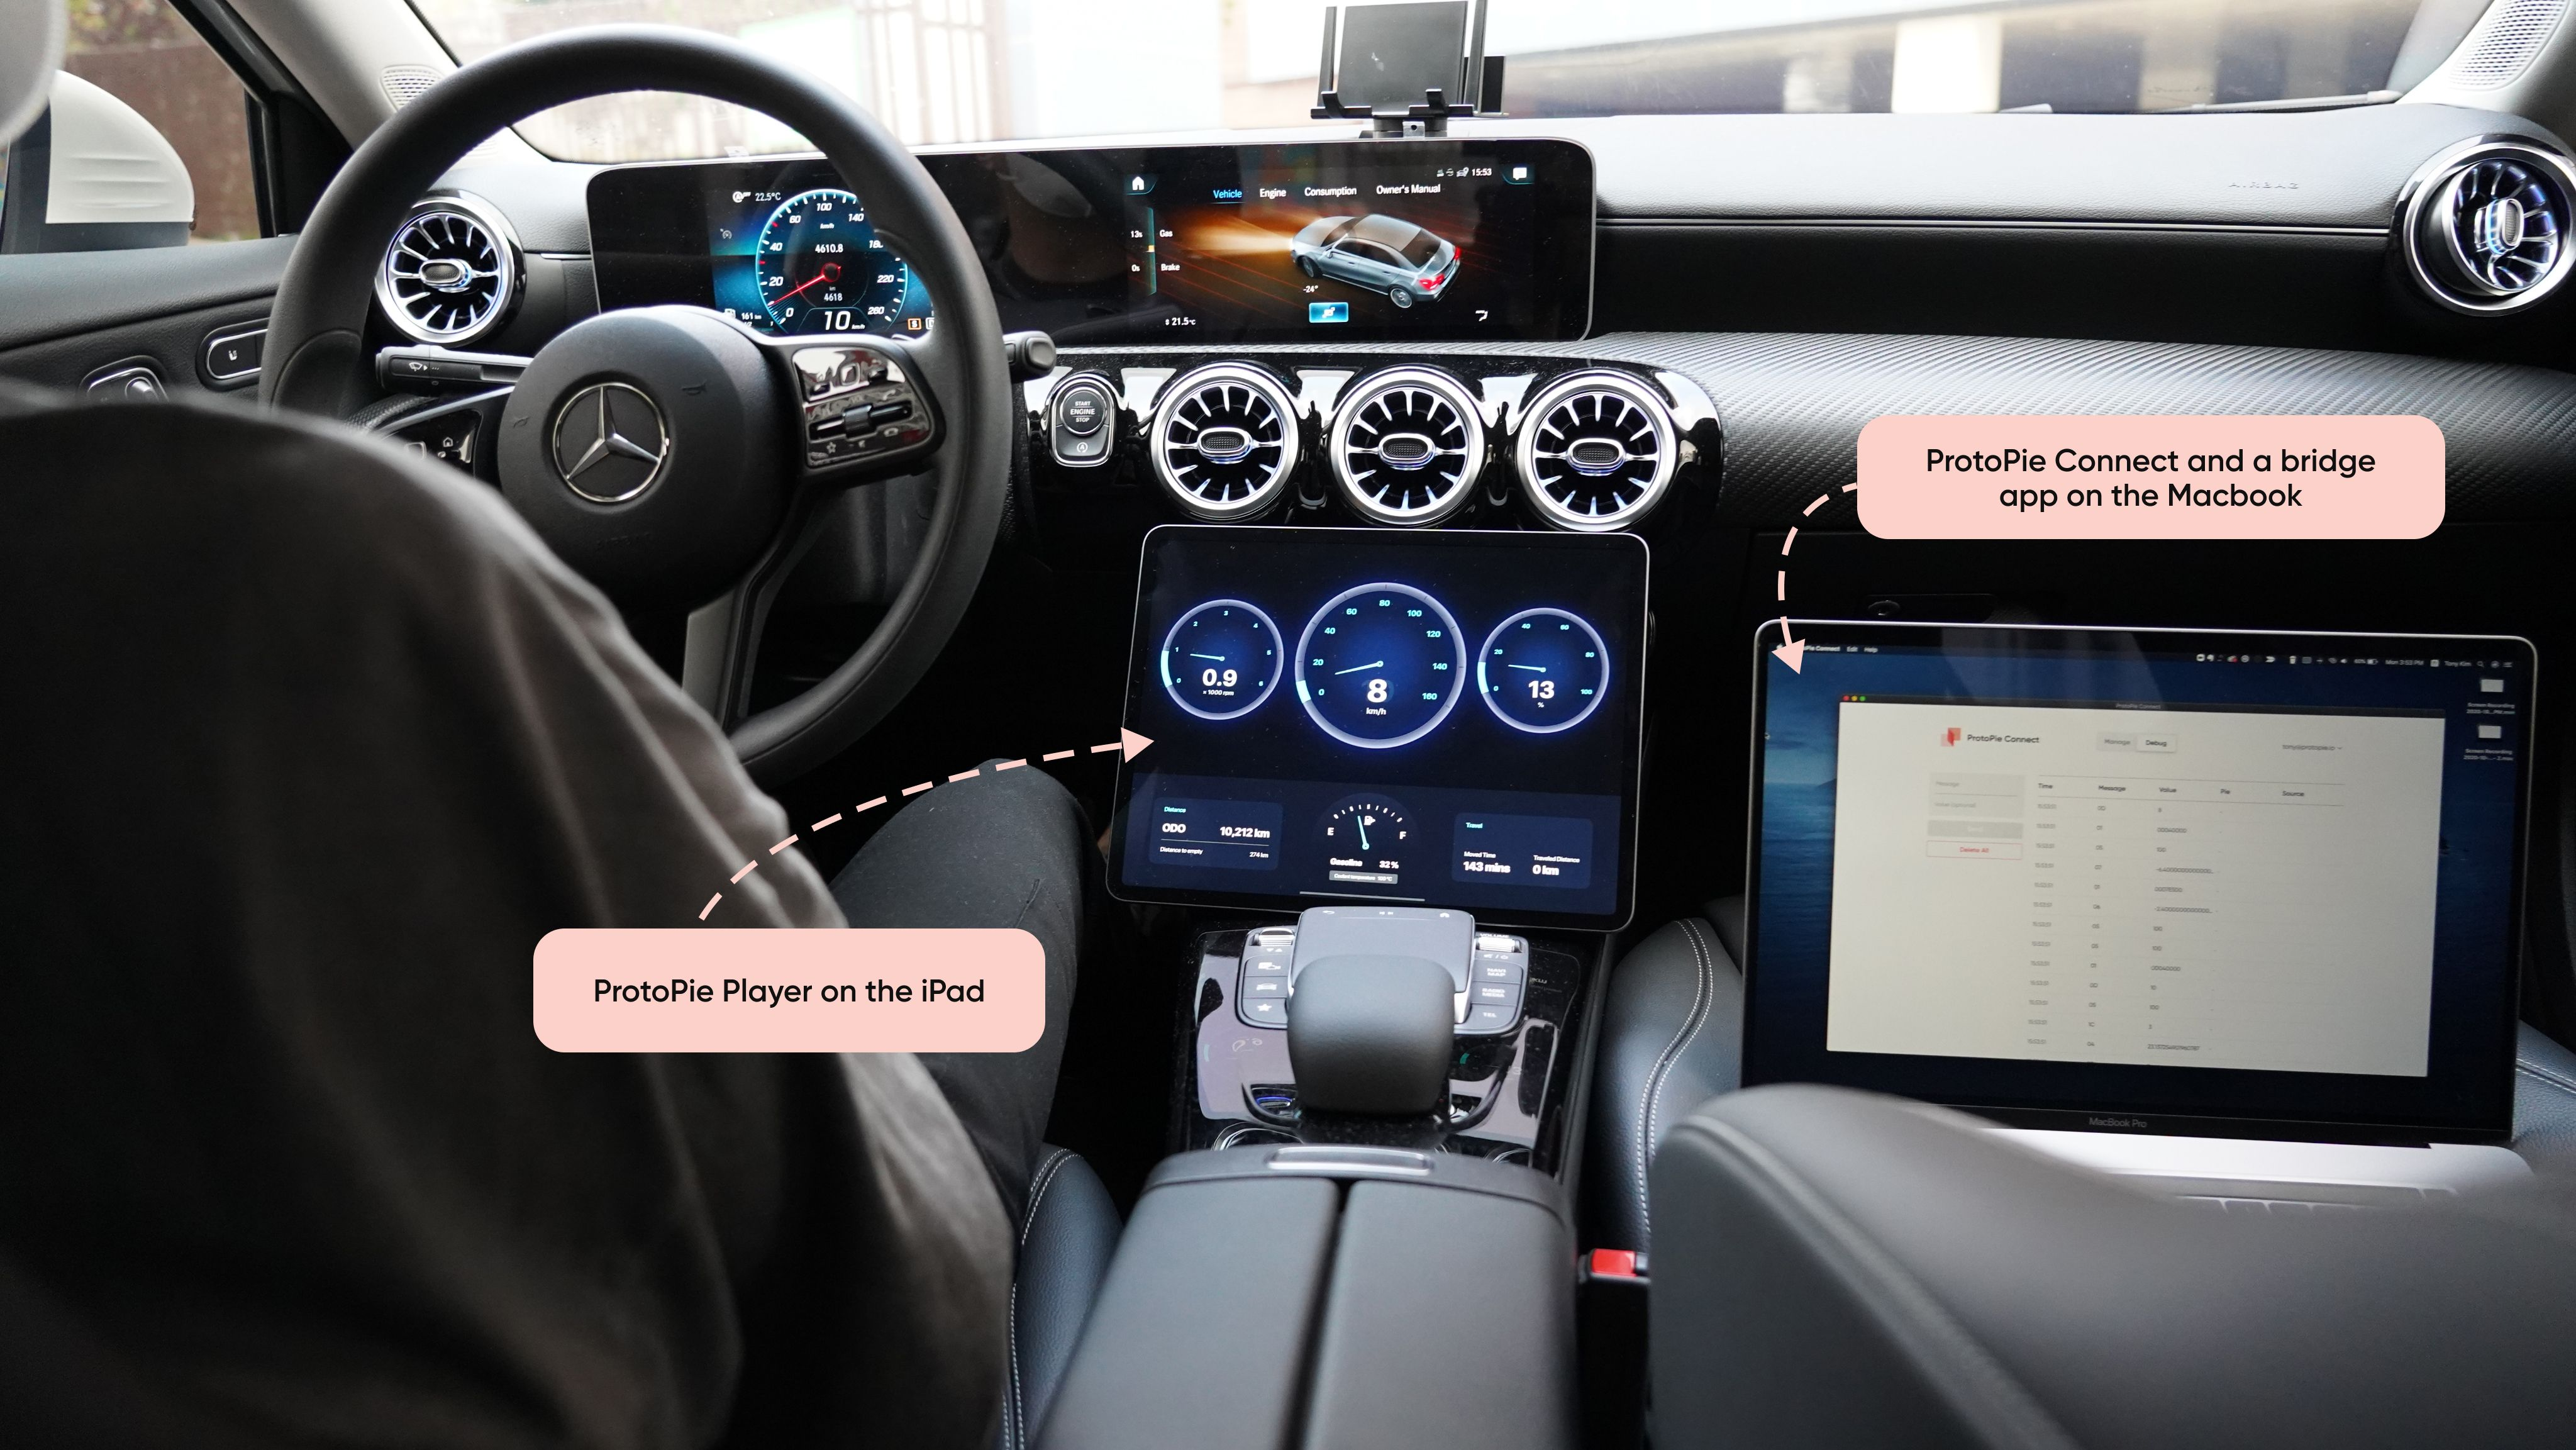 overall process how in-car experience works with protopie player and connect